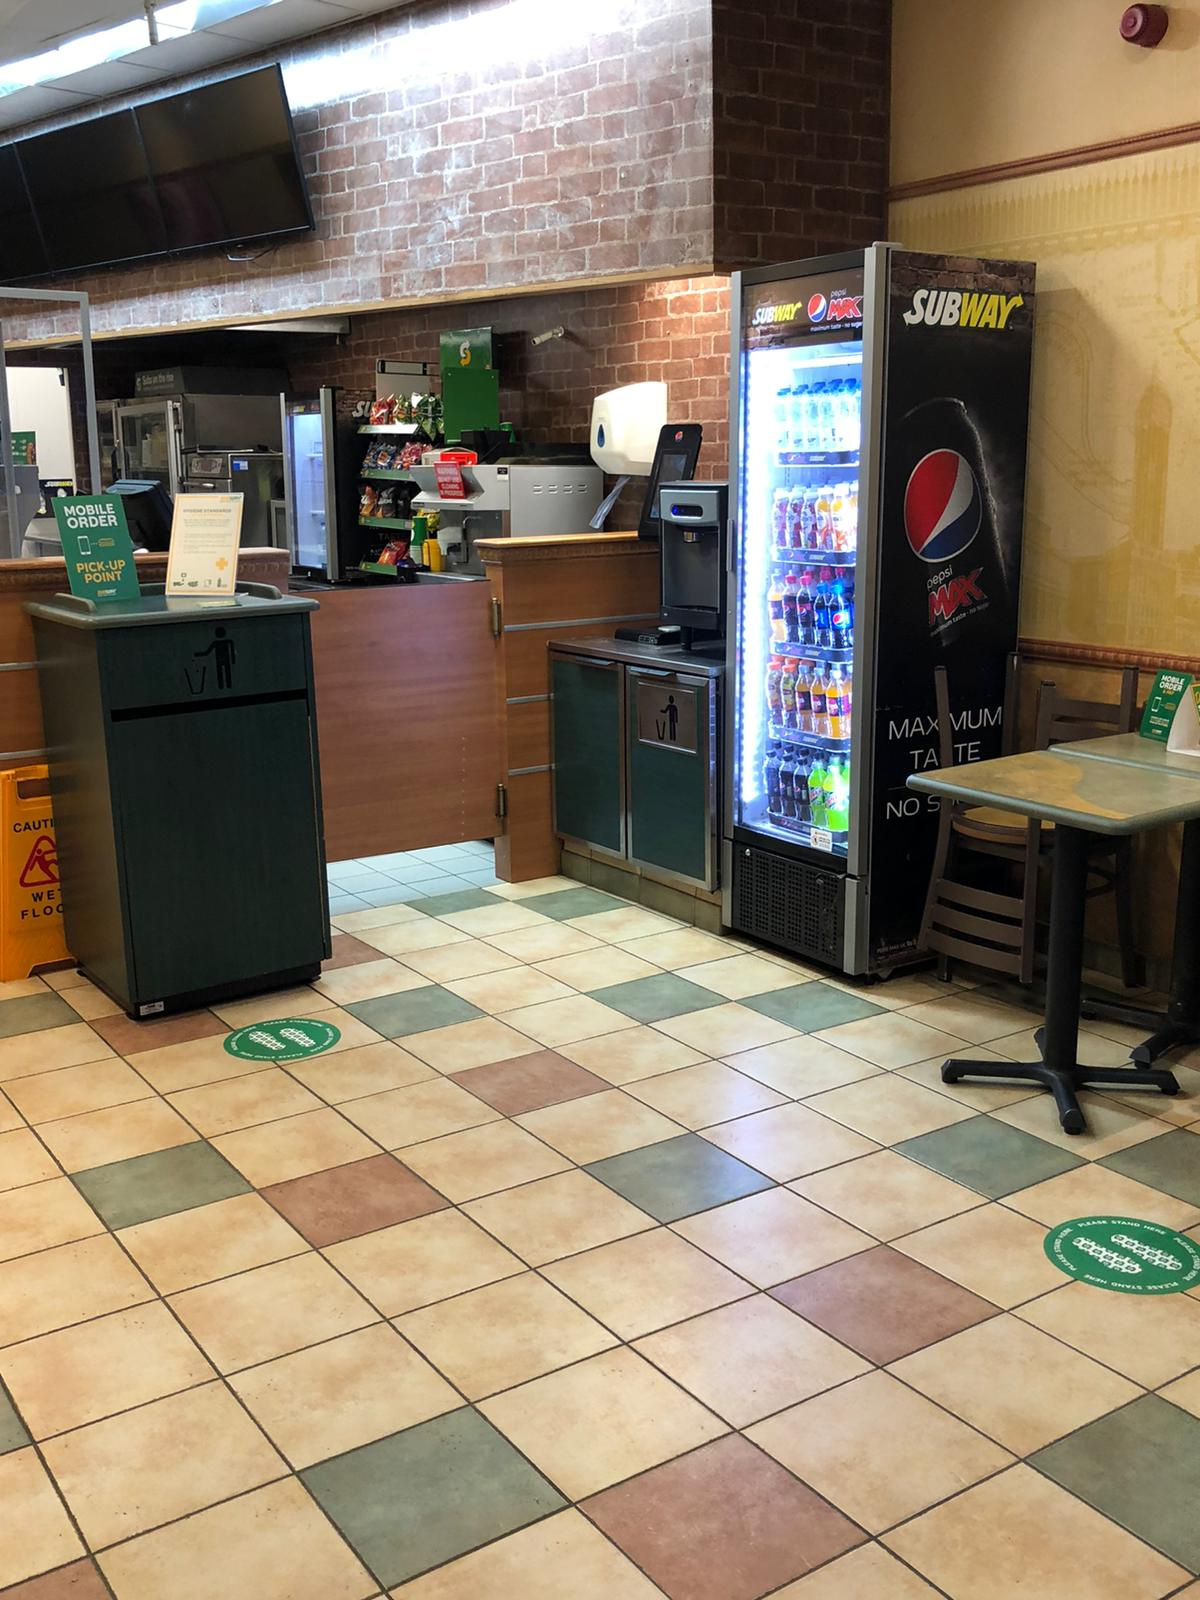 Fantastic opportunity to own a succesful Subway franchise for sale in Surrey